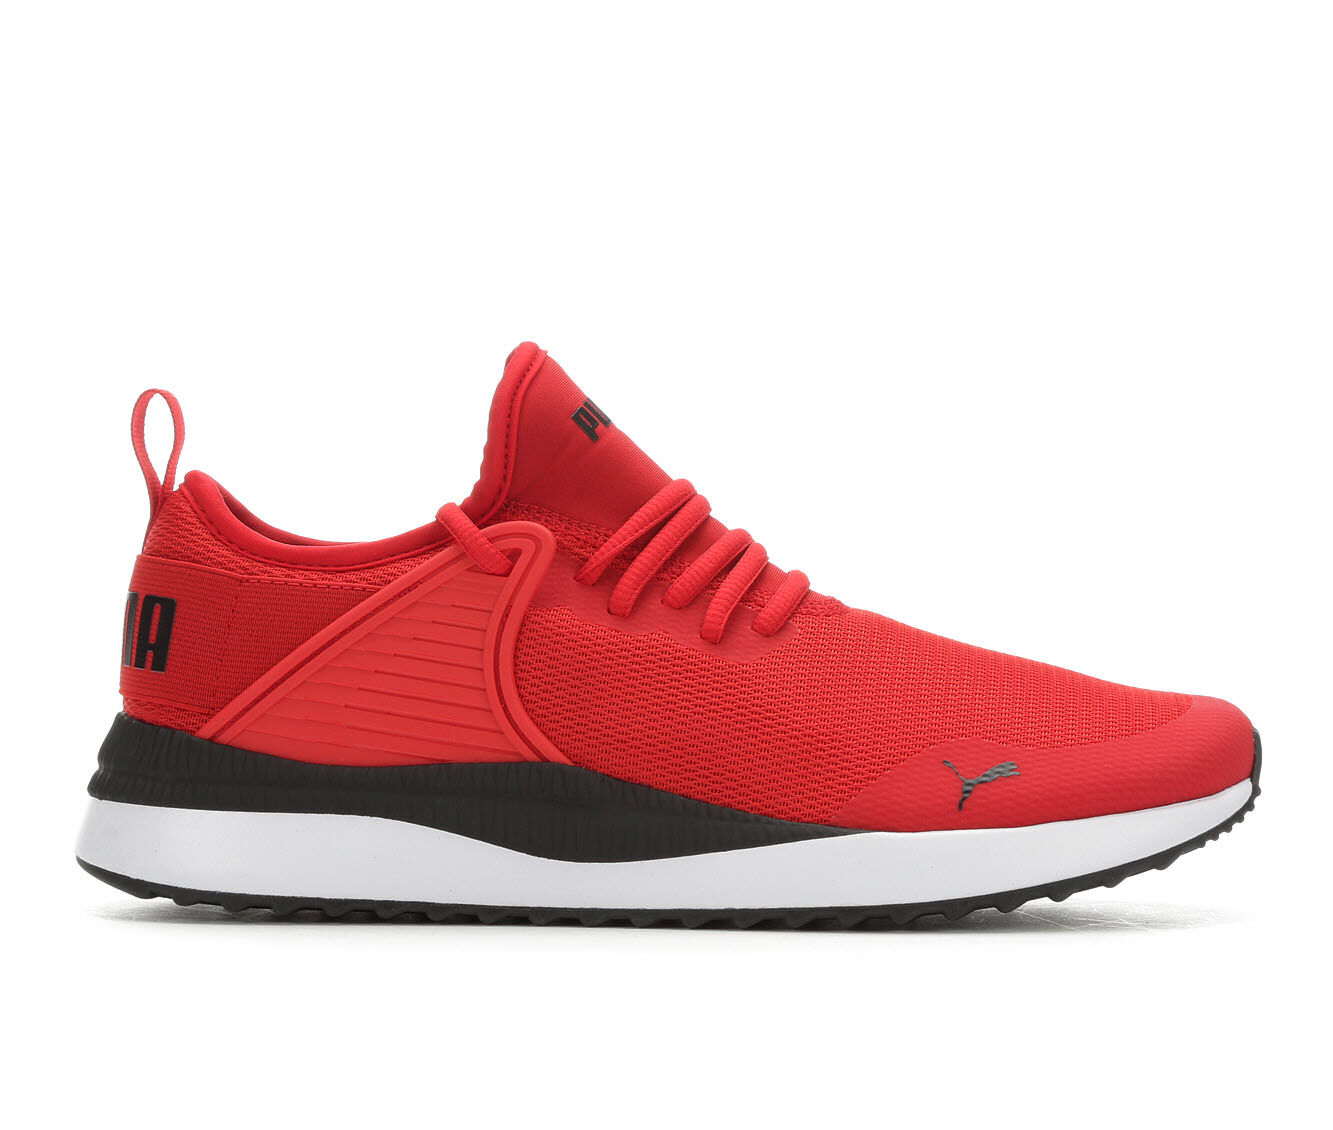 new style Men's Puma Pacer Next Cage Sneakers Red/Black/White